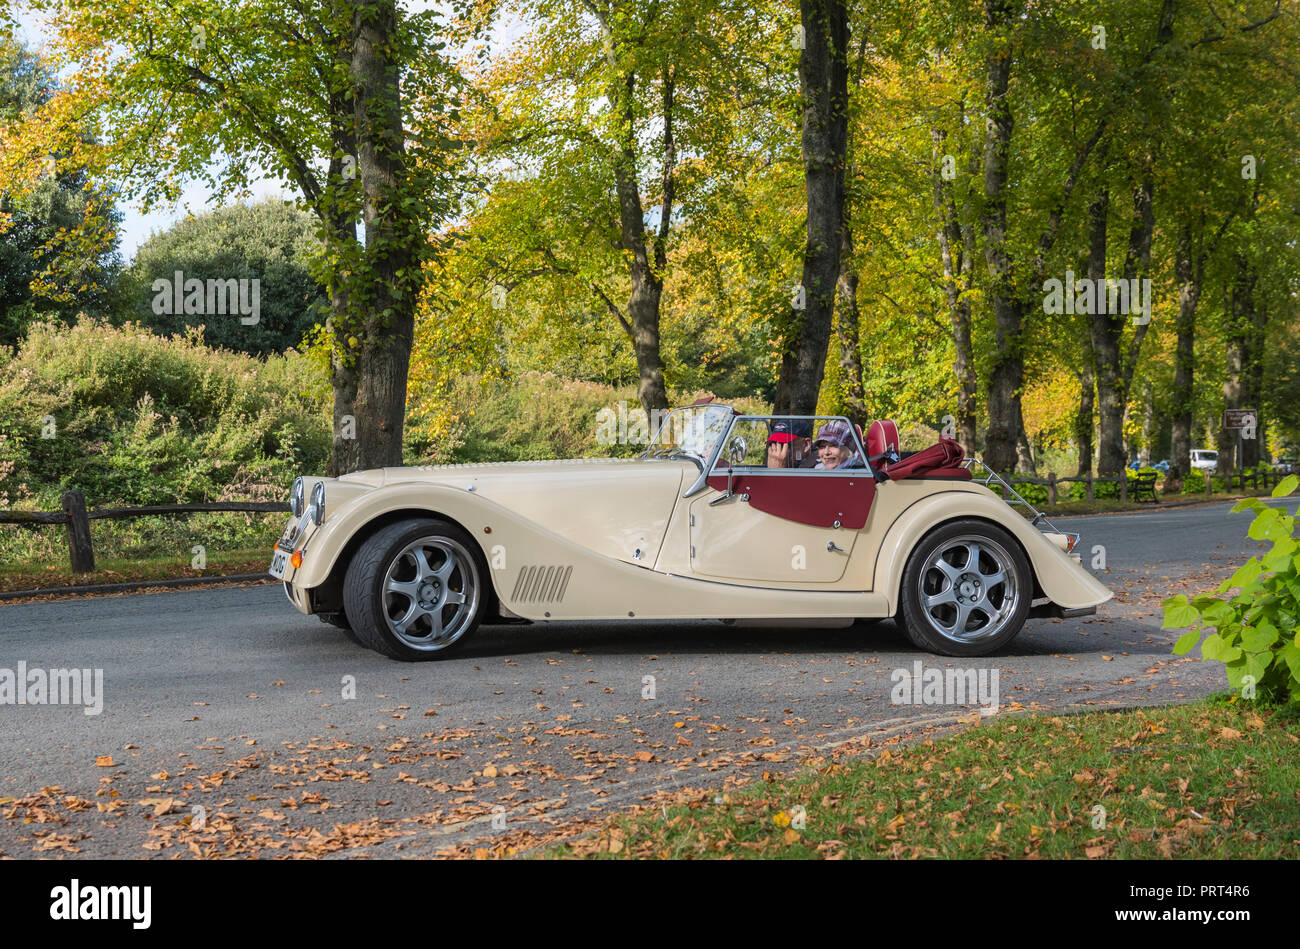 Morgan Aero Supersports car, a cream targo top semi convertible car with 2 passengers and the top down, on a country road in the UK. - Stock Image